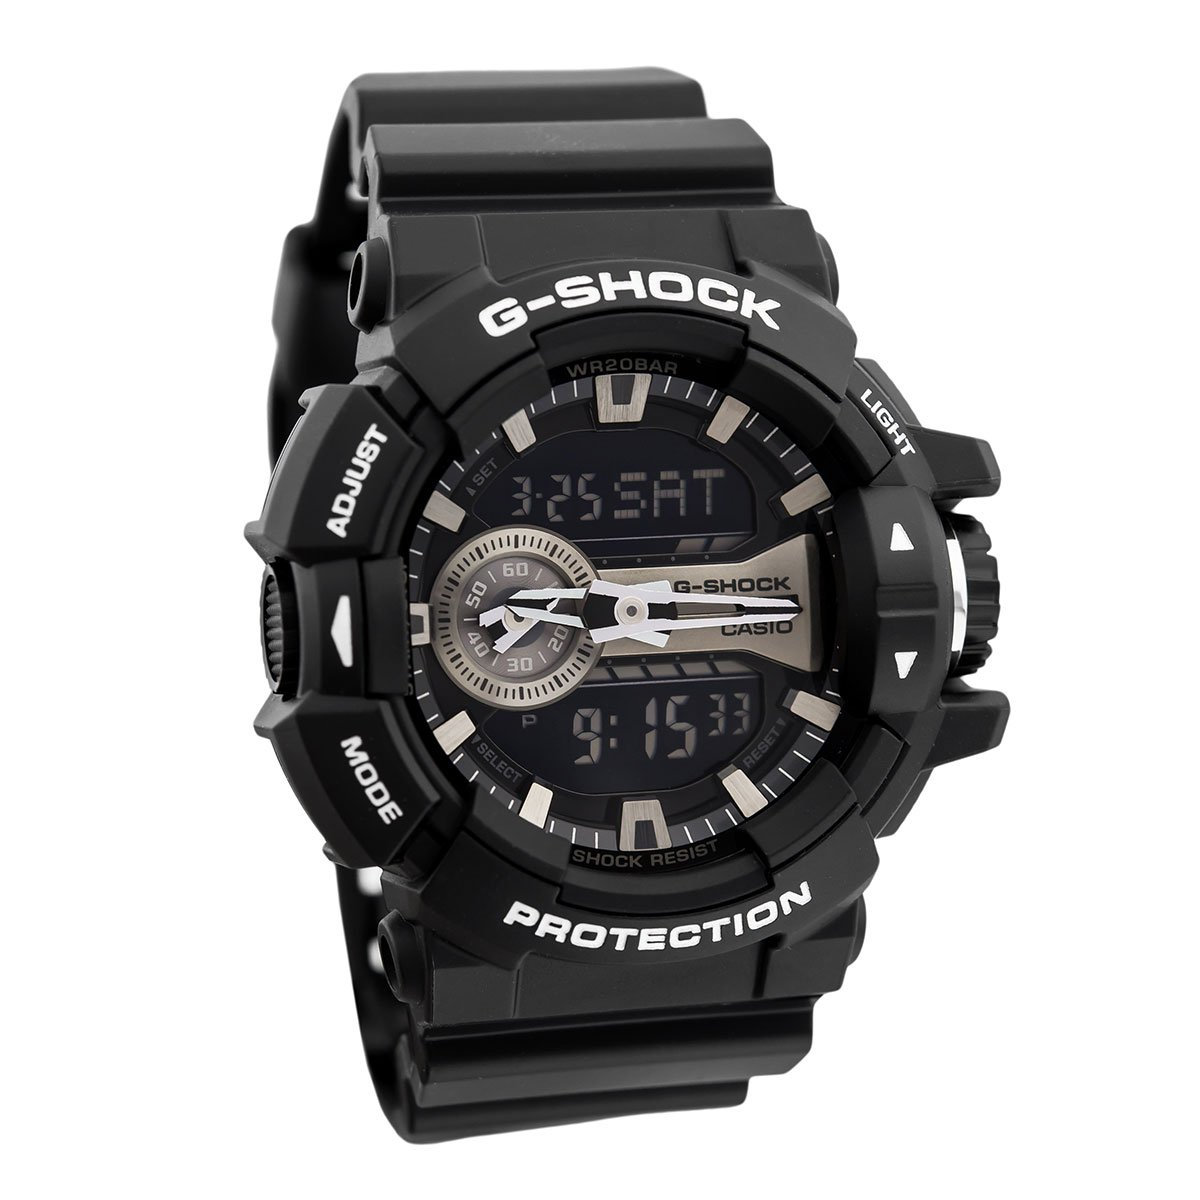 Casio G-Shock Black and Silver-Tone Dial Resin Quartz Men's Watch GA400GB-1A by Casio